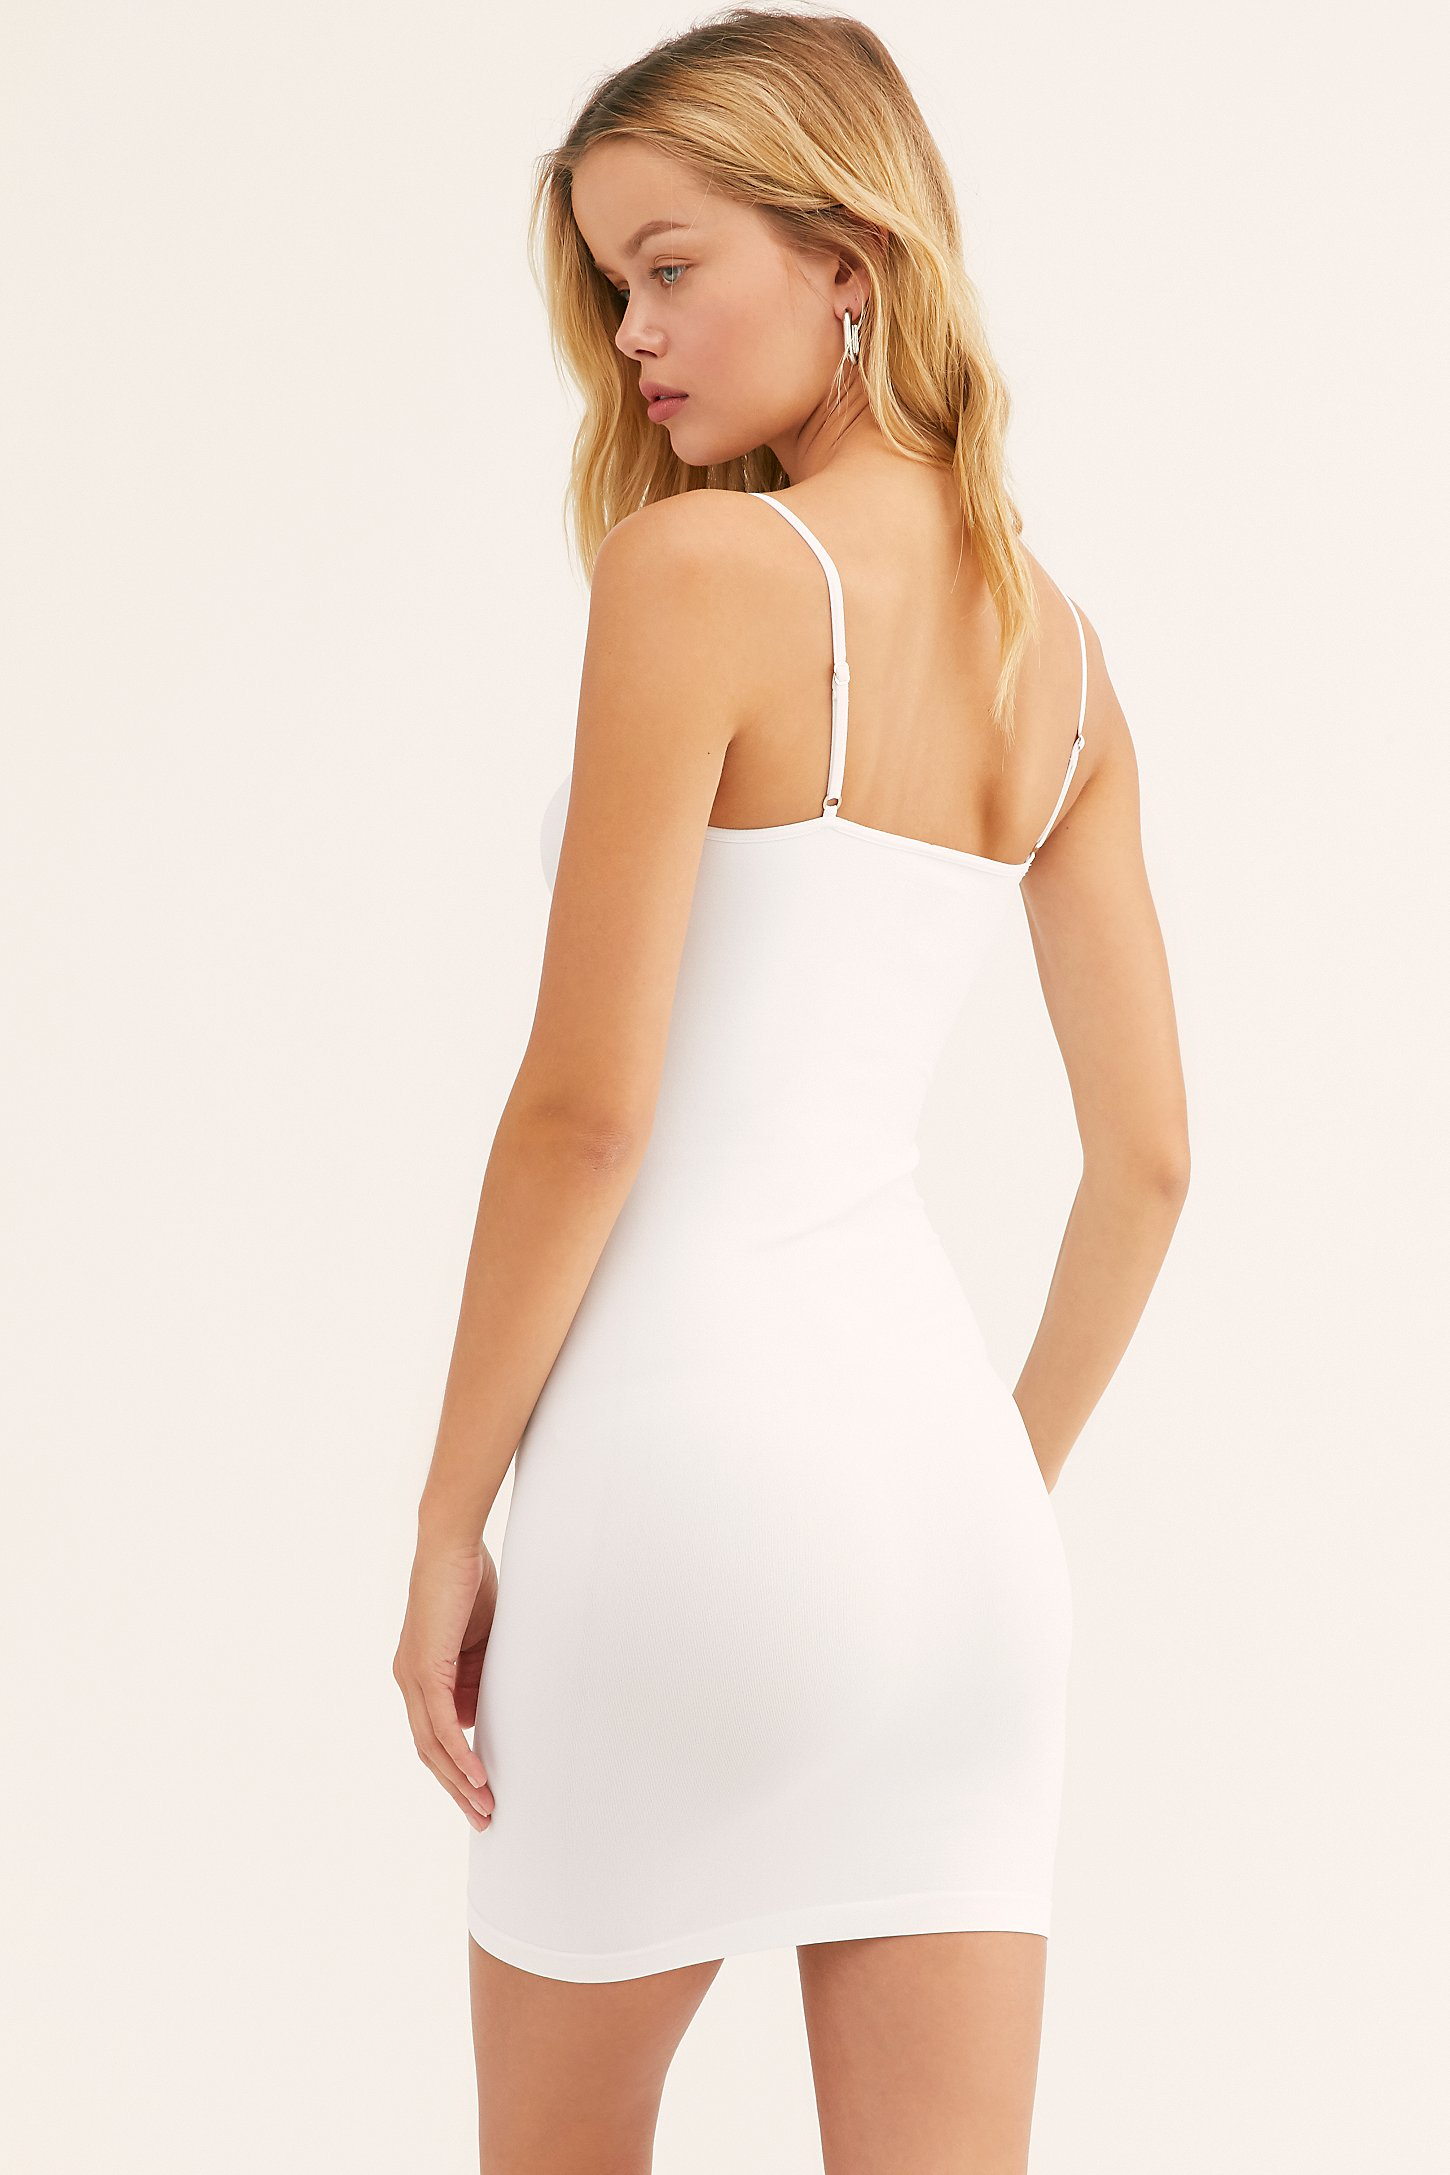 New-Free-People-Intimately-Seamless-Mini-Slip-Bodycon-Dress-Womens-Xs-L-30 thumbnail 41